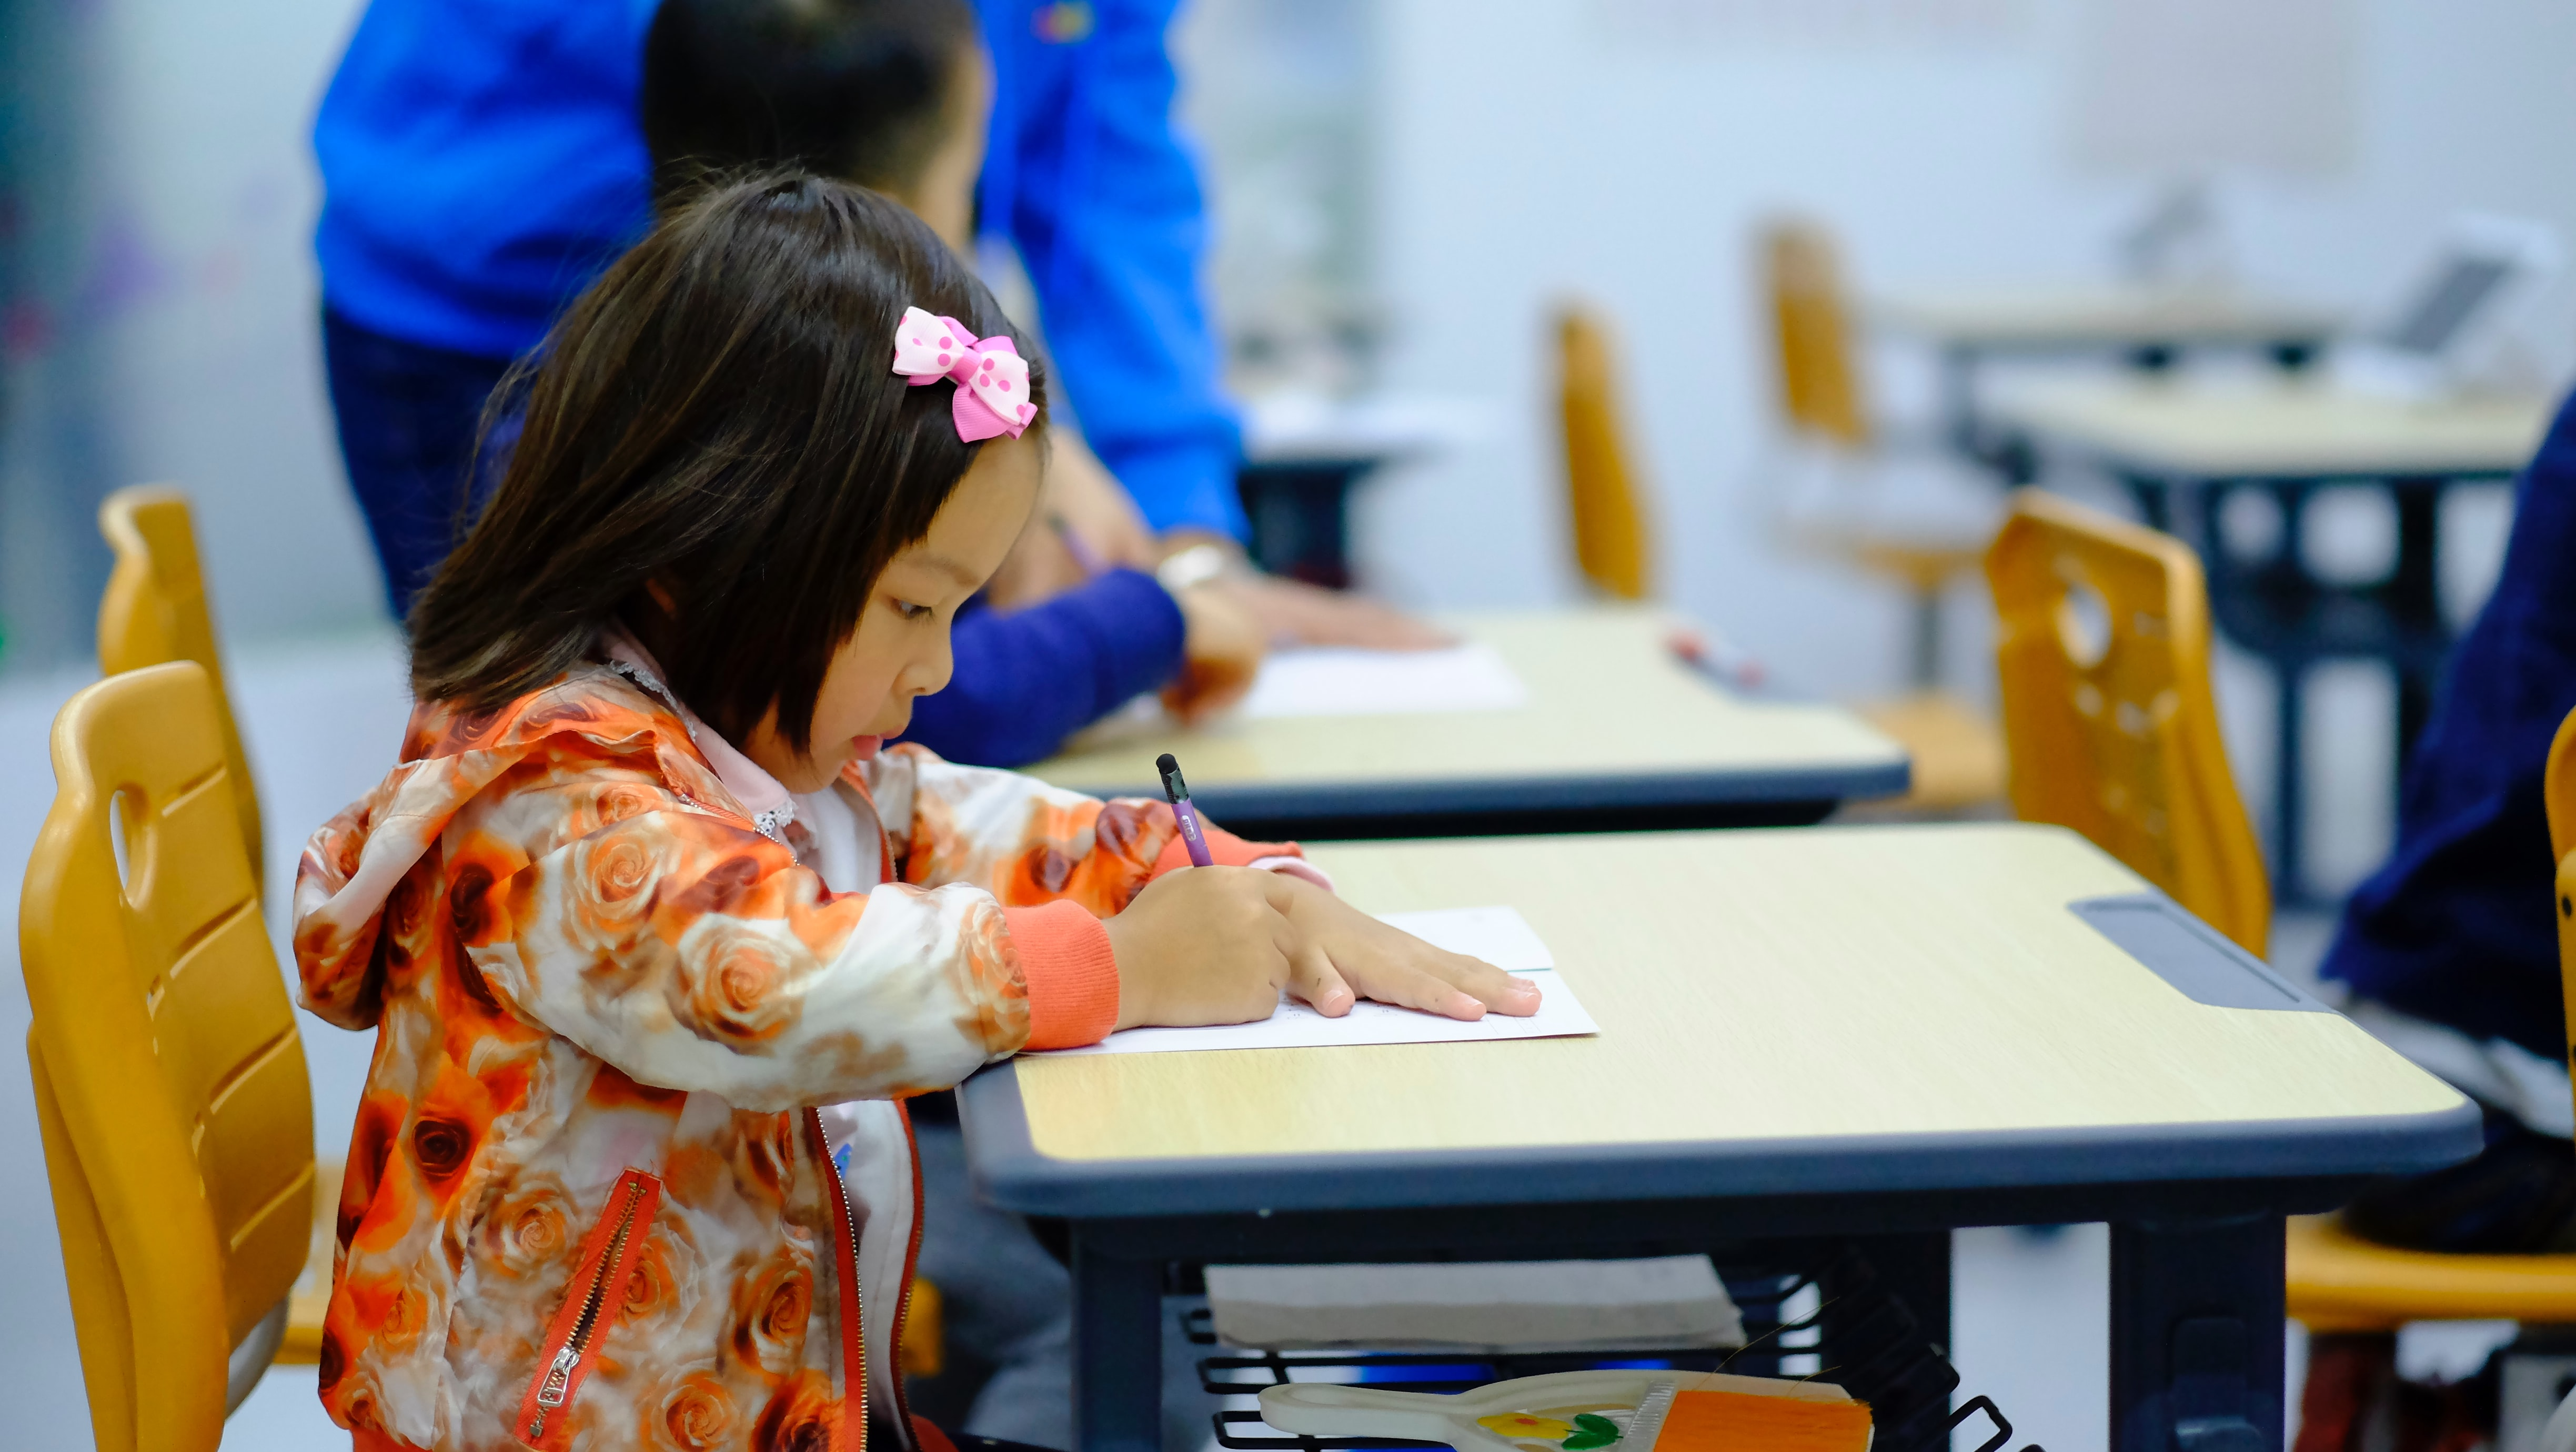 Many schools are adopting year-round schooling. However, some schools that originally switched to a year-round school schedule are reverting back to the traditional school calendar.